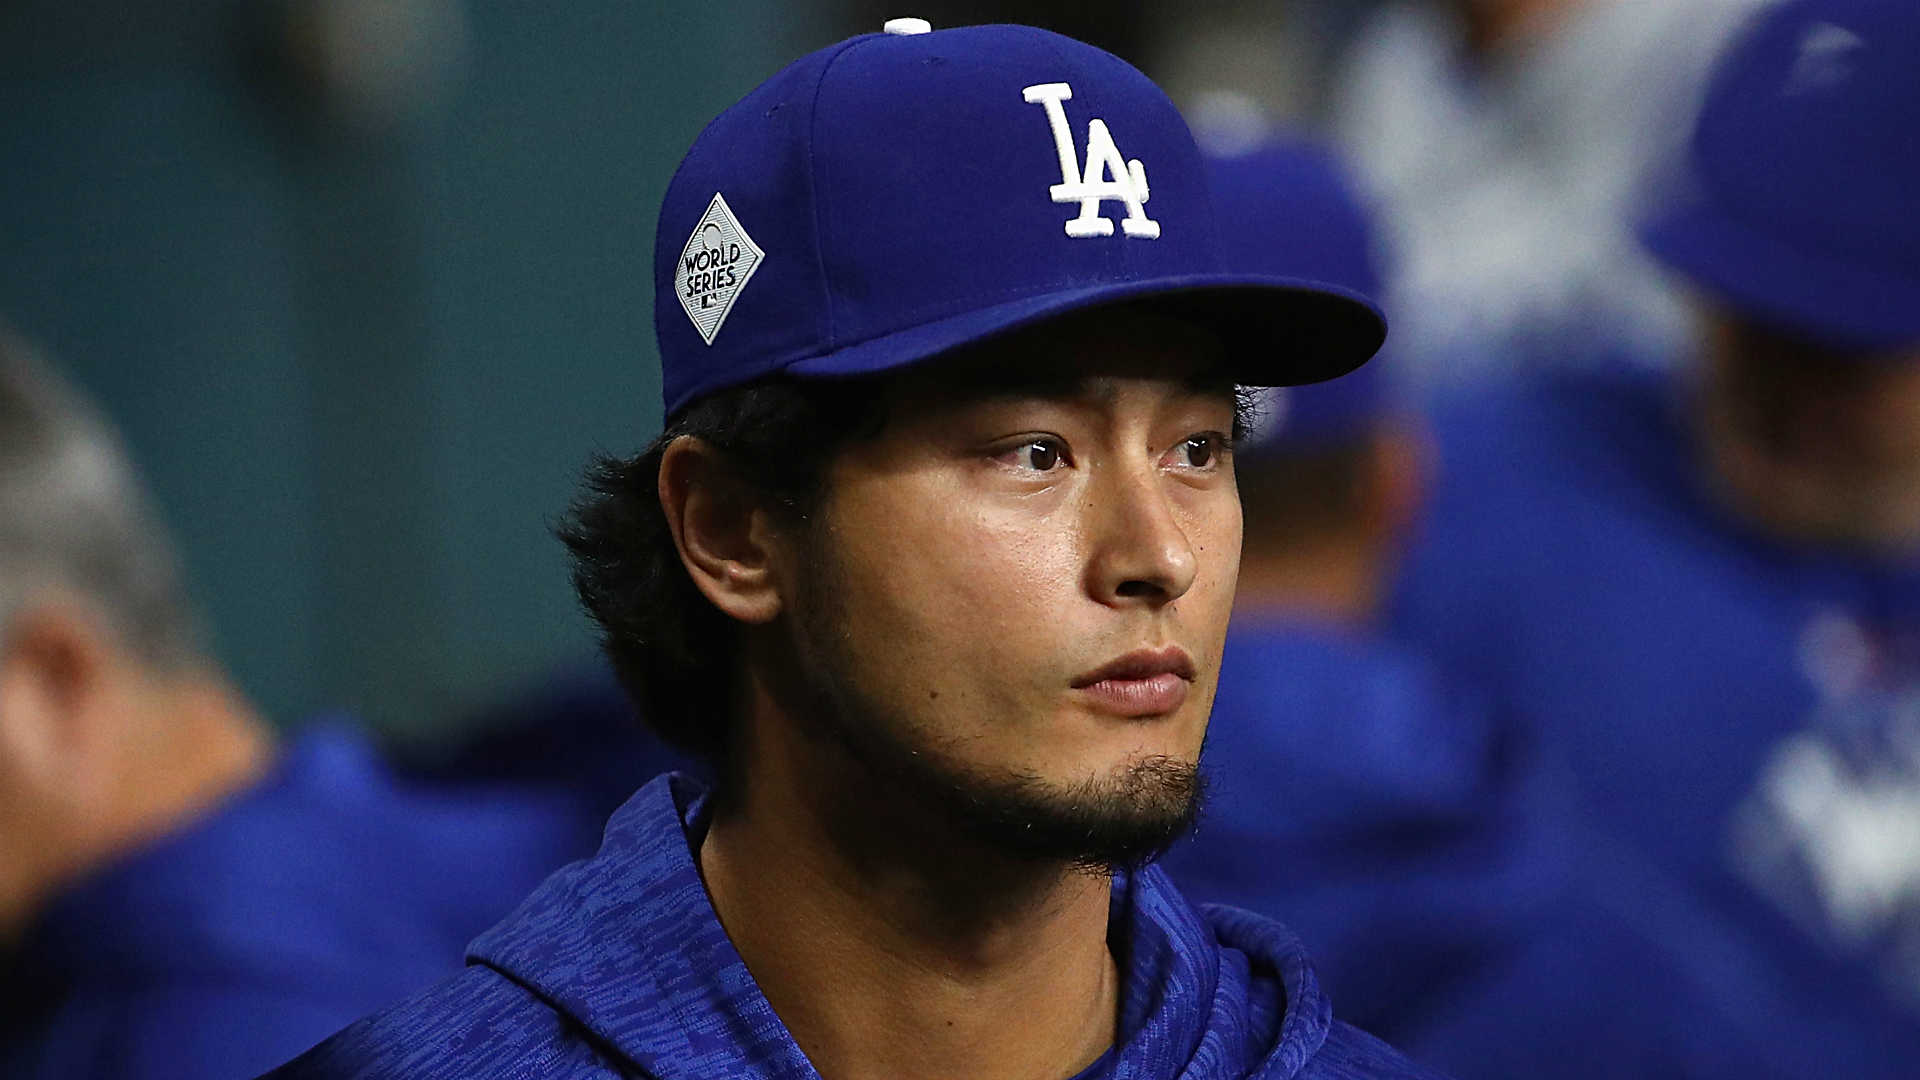 Darvish Inks Deal With the Chicago Cubs